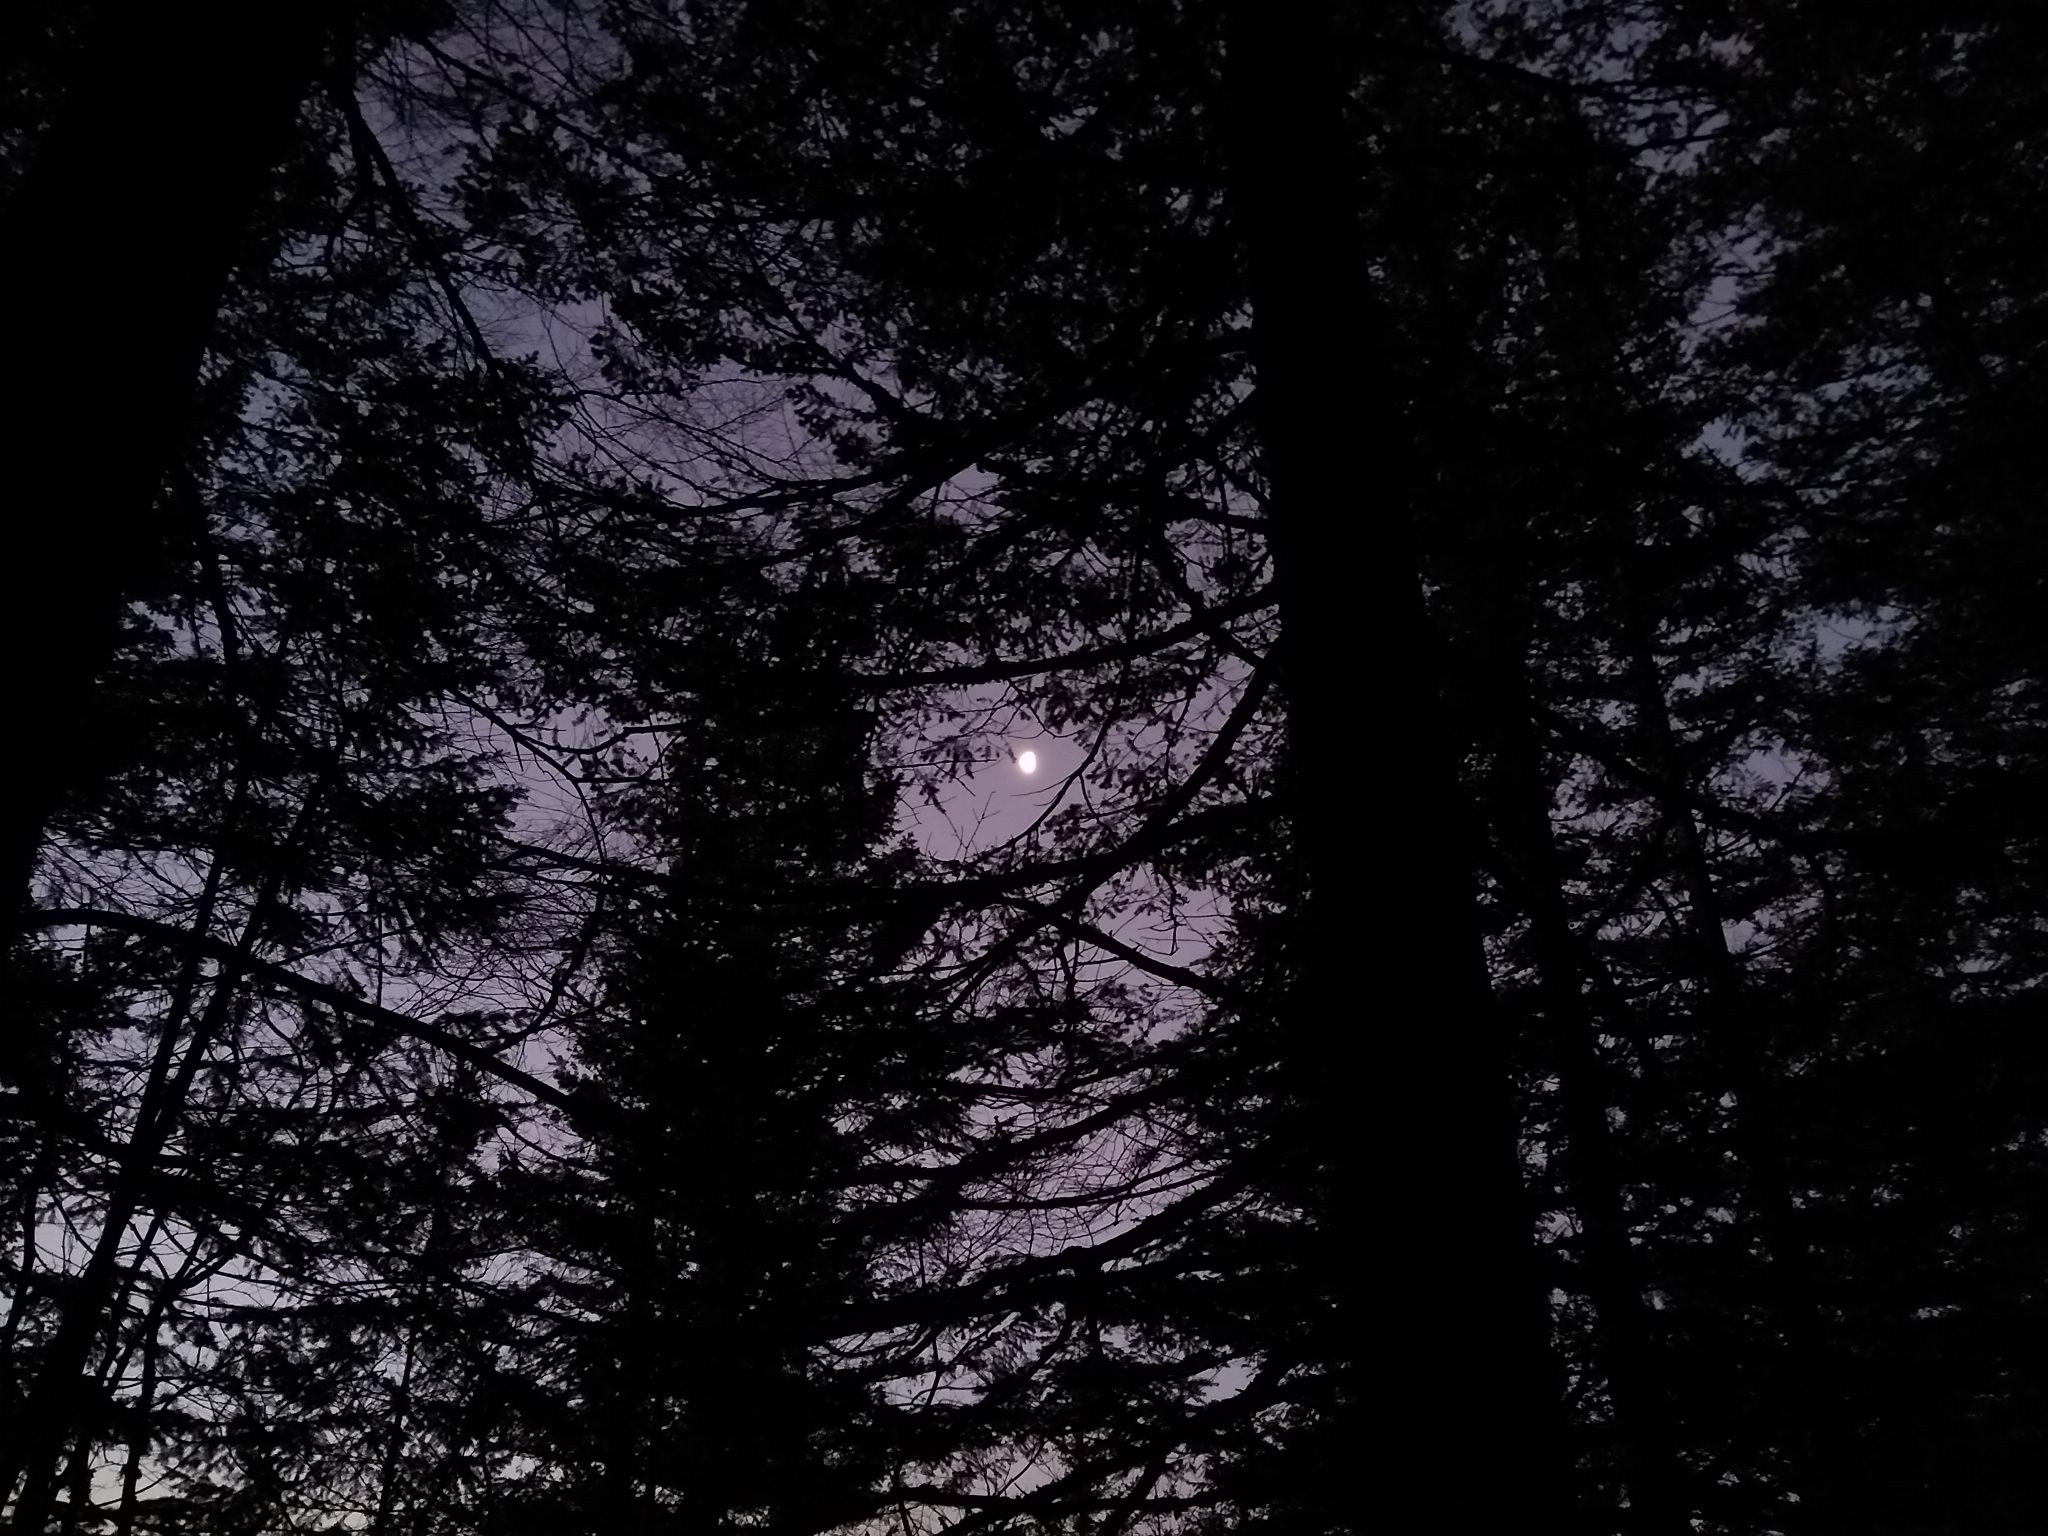 The moon seen in early morning light in the forest